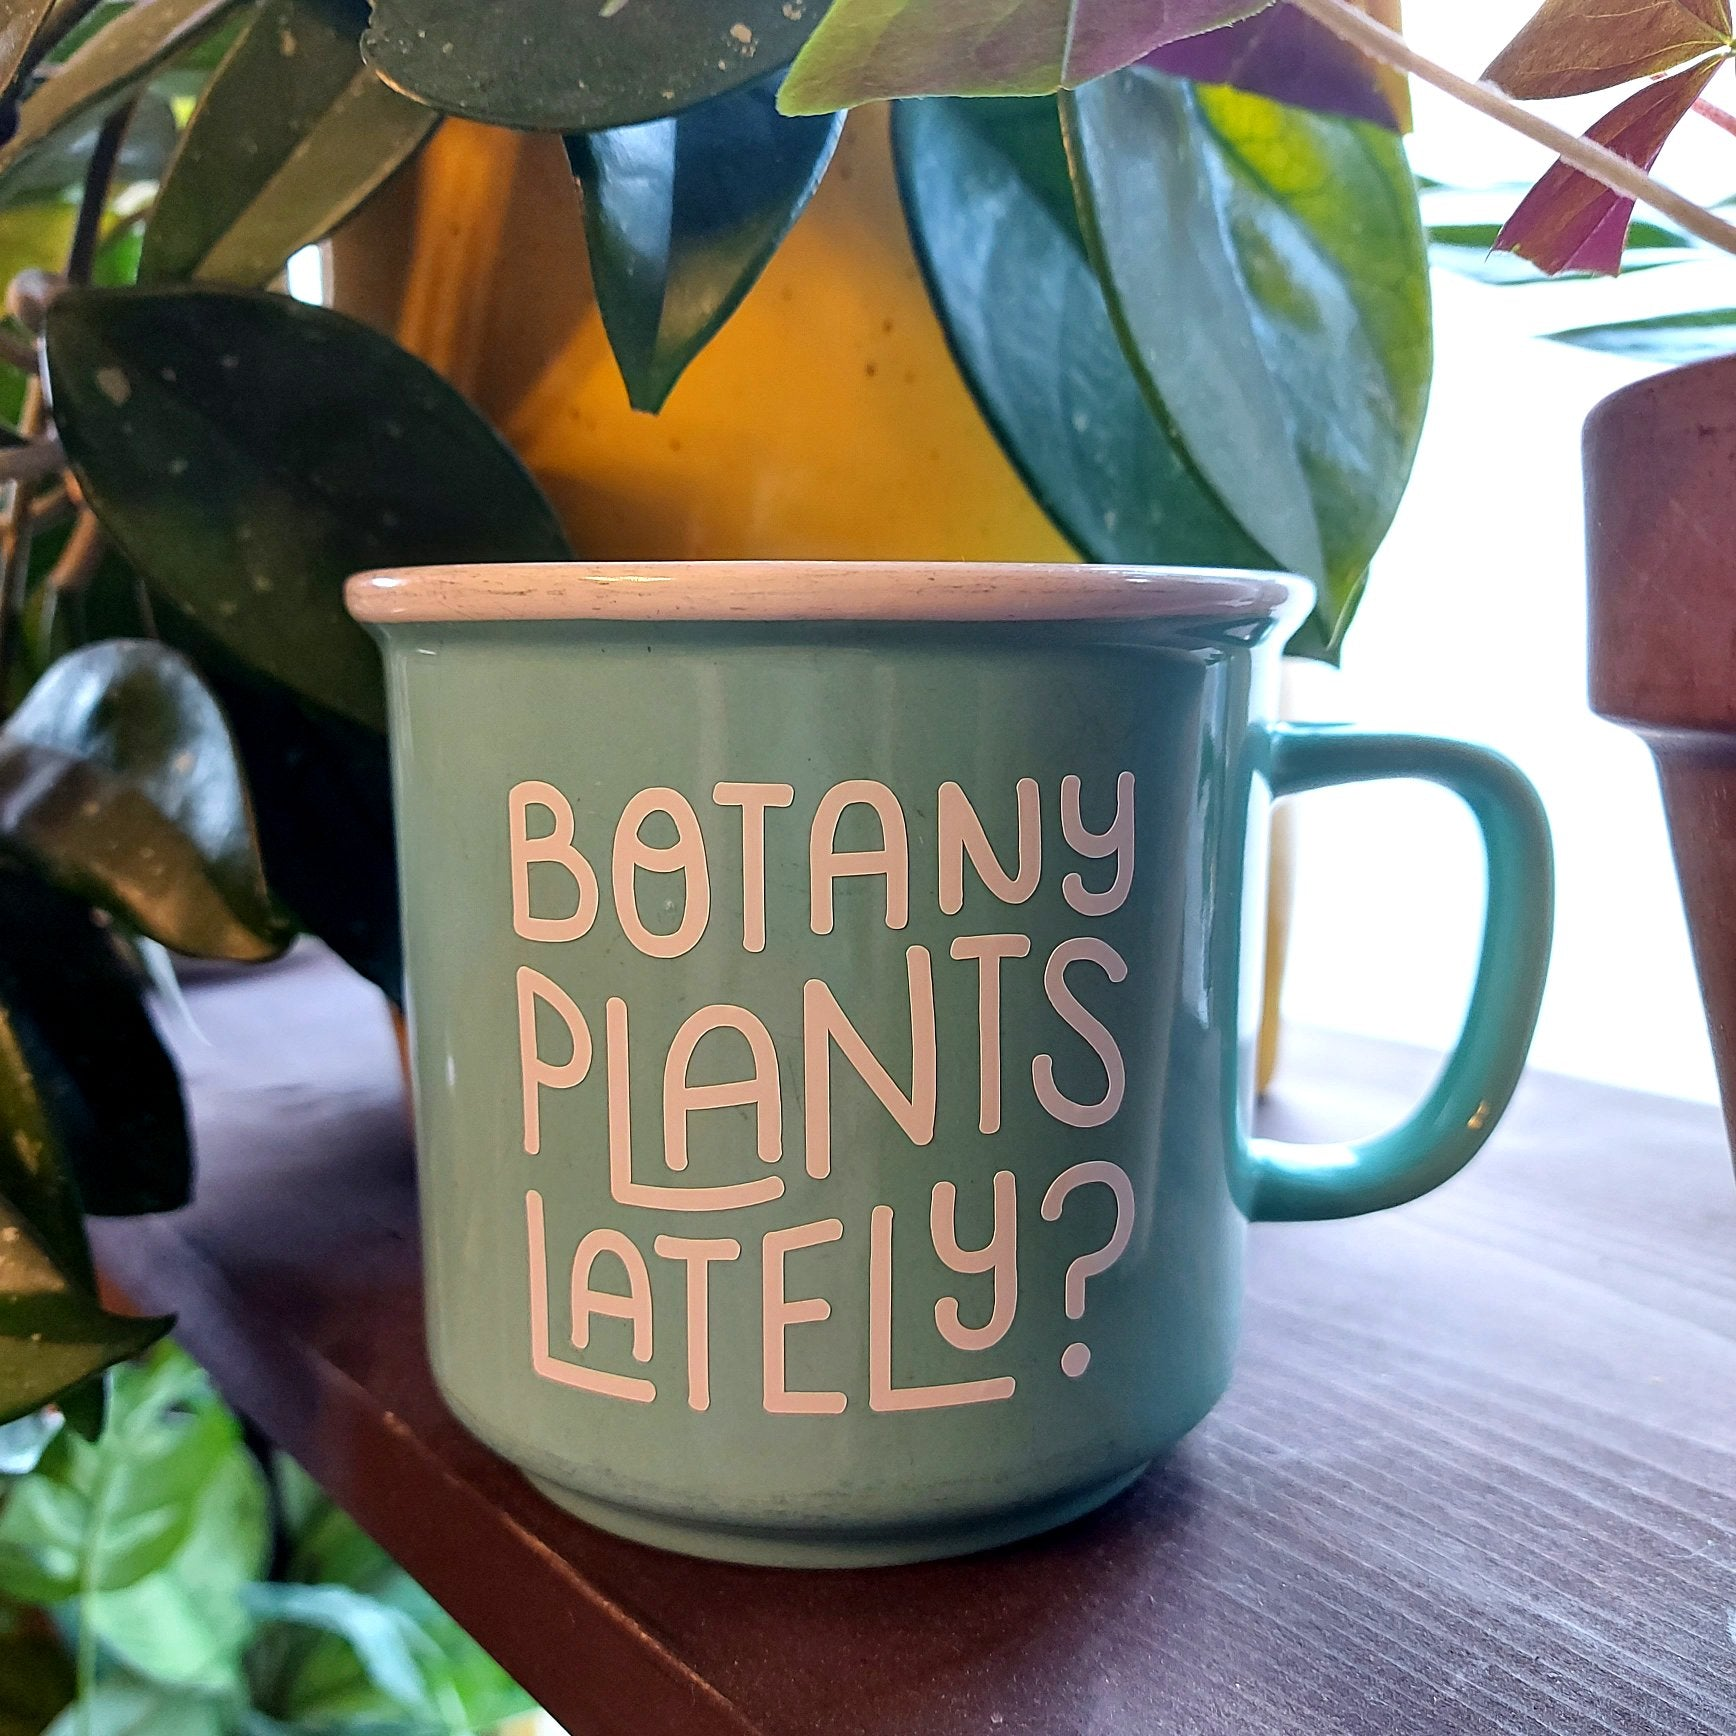 Botany Plants Lately?